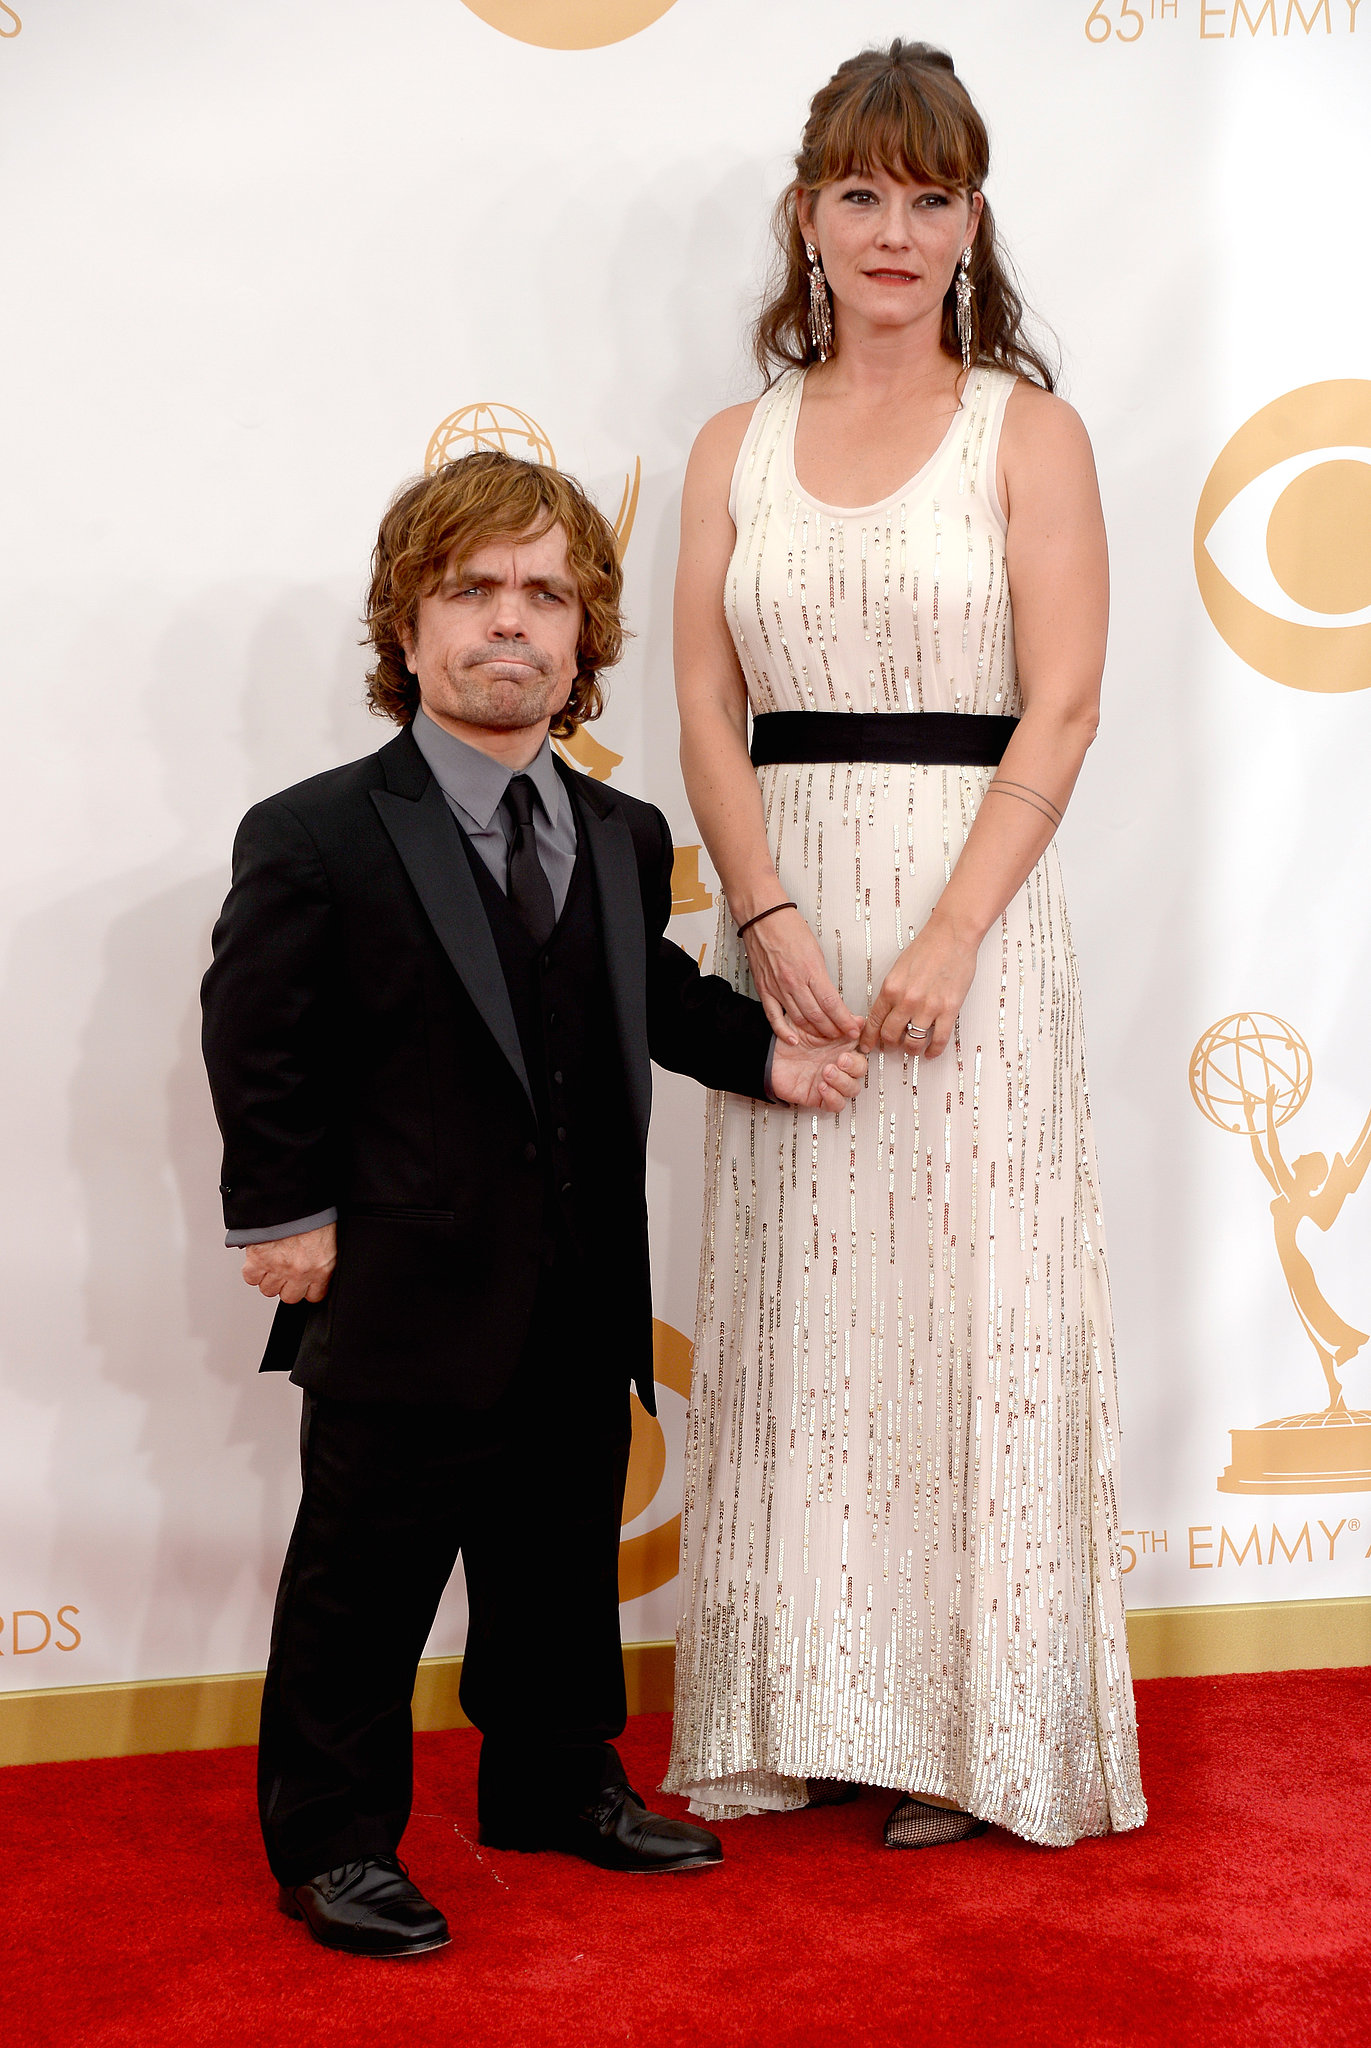 Game of Thrones star Peter Dinklage and Erica Schmidt attended the Emmys.